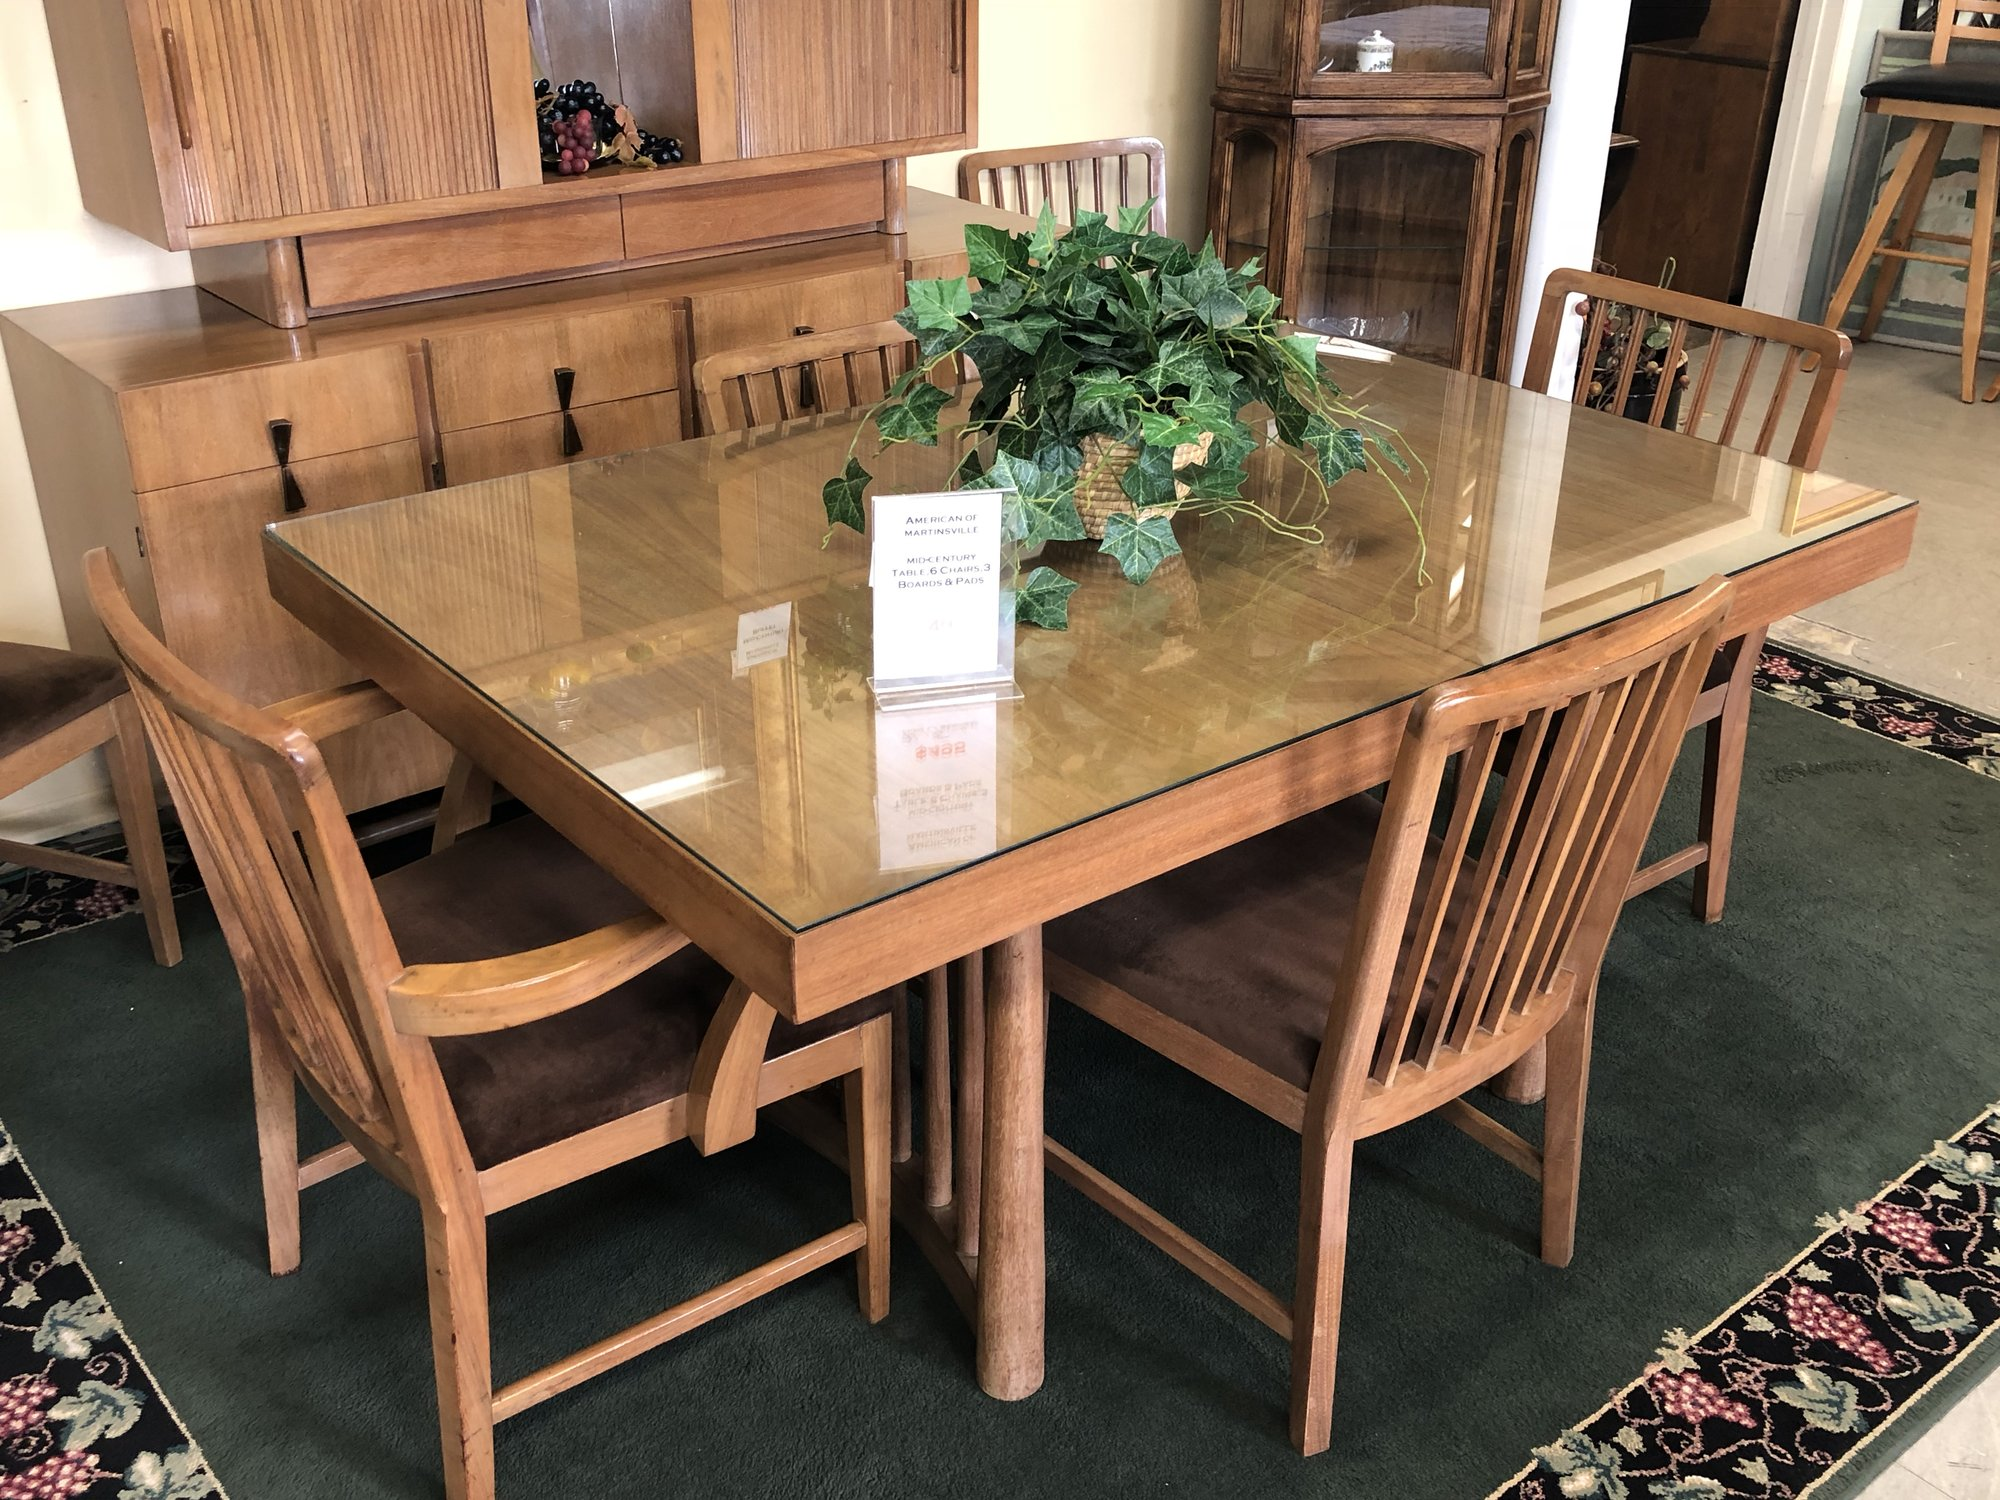 Used Furniture Gallery - Wooden dining room table with 6 chairs